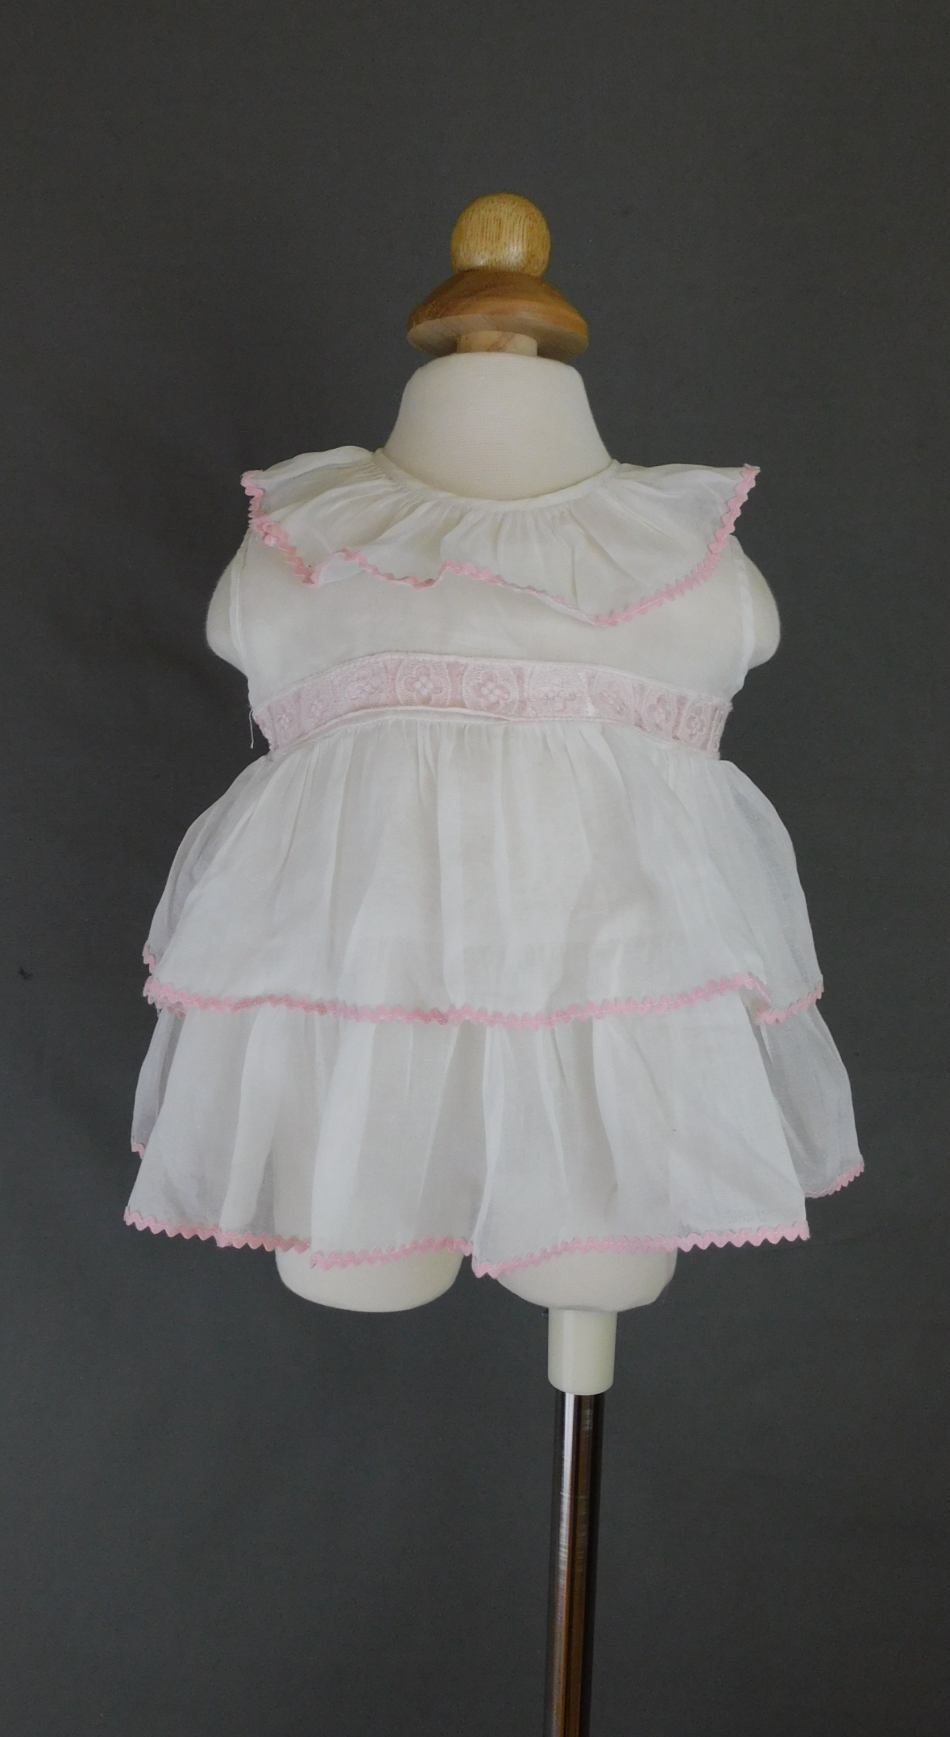 Vintage 1940s Baby Dress White Organdy with Pink Trim, 18 inch chest